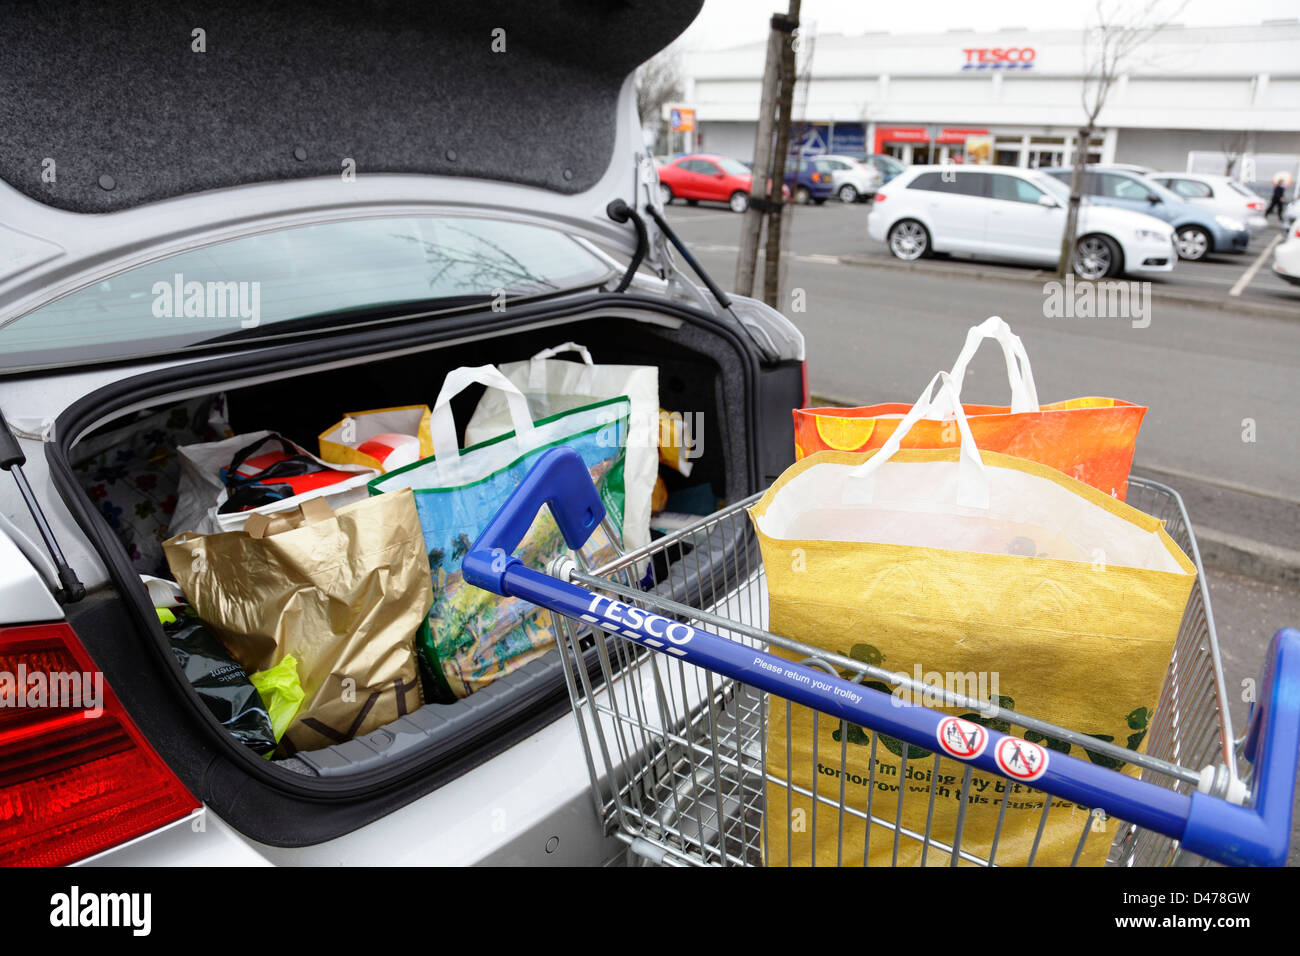 Shopping bags in a Tesco shopping trolley and car boot in a Tesco car park, Scotland, UK - Stock Image